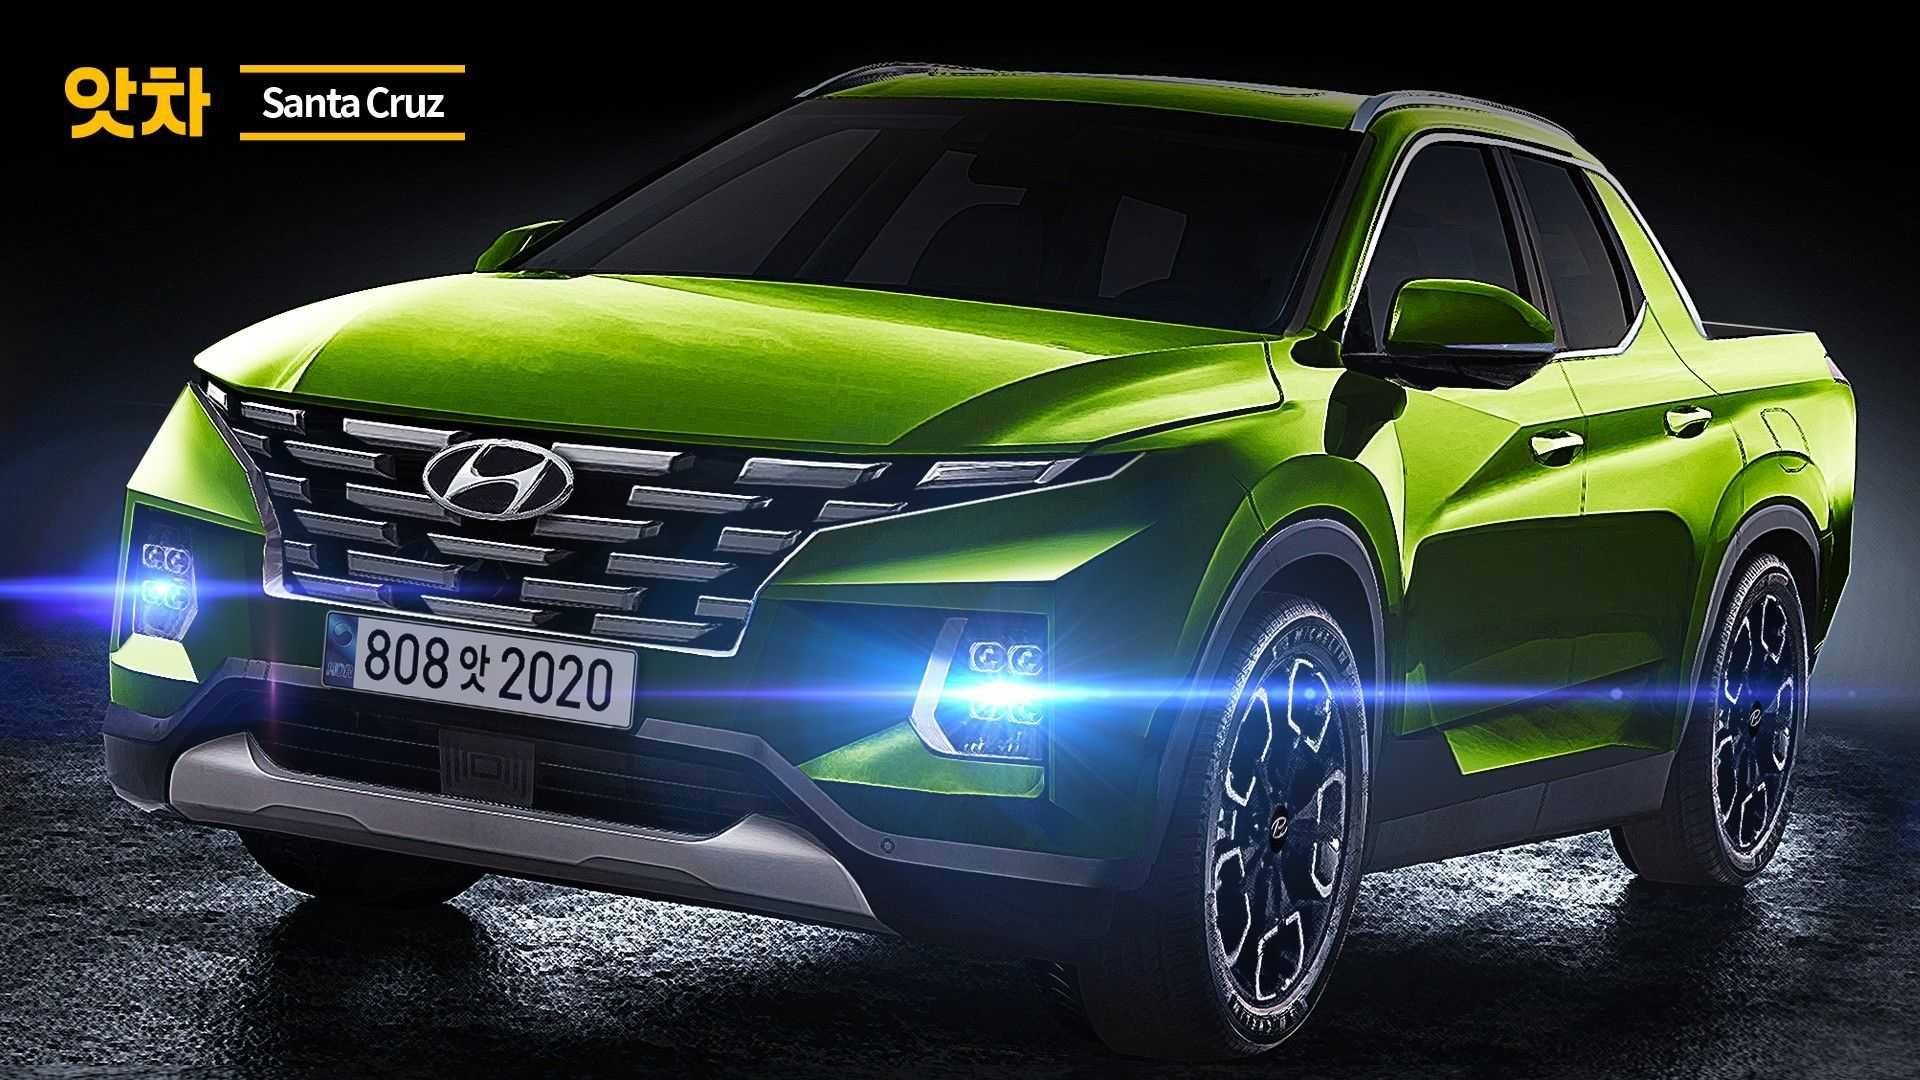 Using Our Latest Spy Shots Of The Hyundai Santa Cruz A Talented Artist Has Rendered The New Small Pickup Truck Ahead Of Its Reveal Later This Year